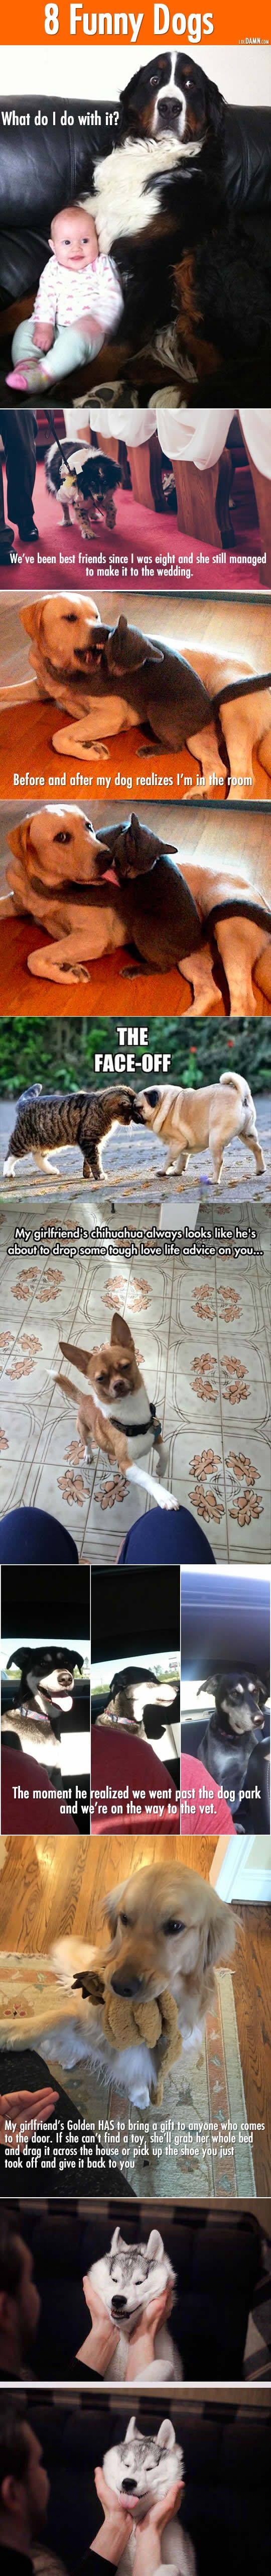 8 Funny dogs.  LOL, Damn! Funny and Awesome pictures.